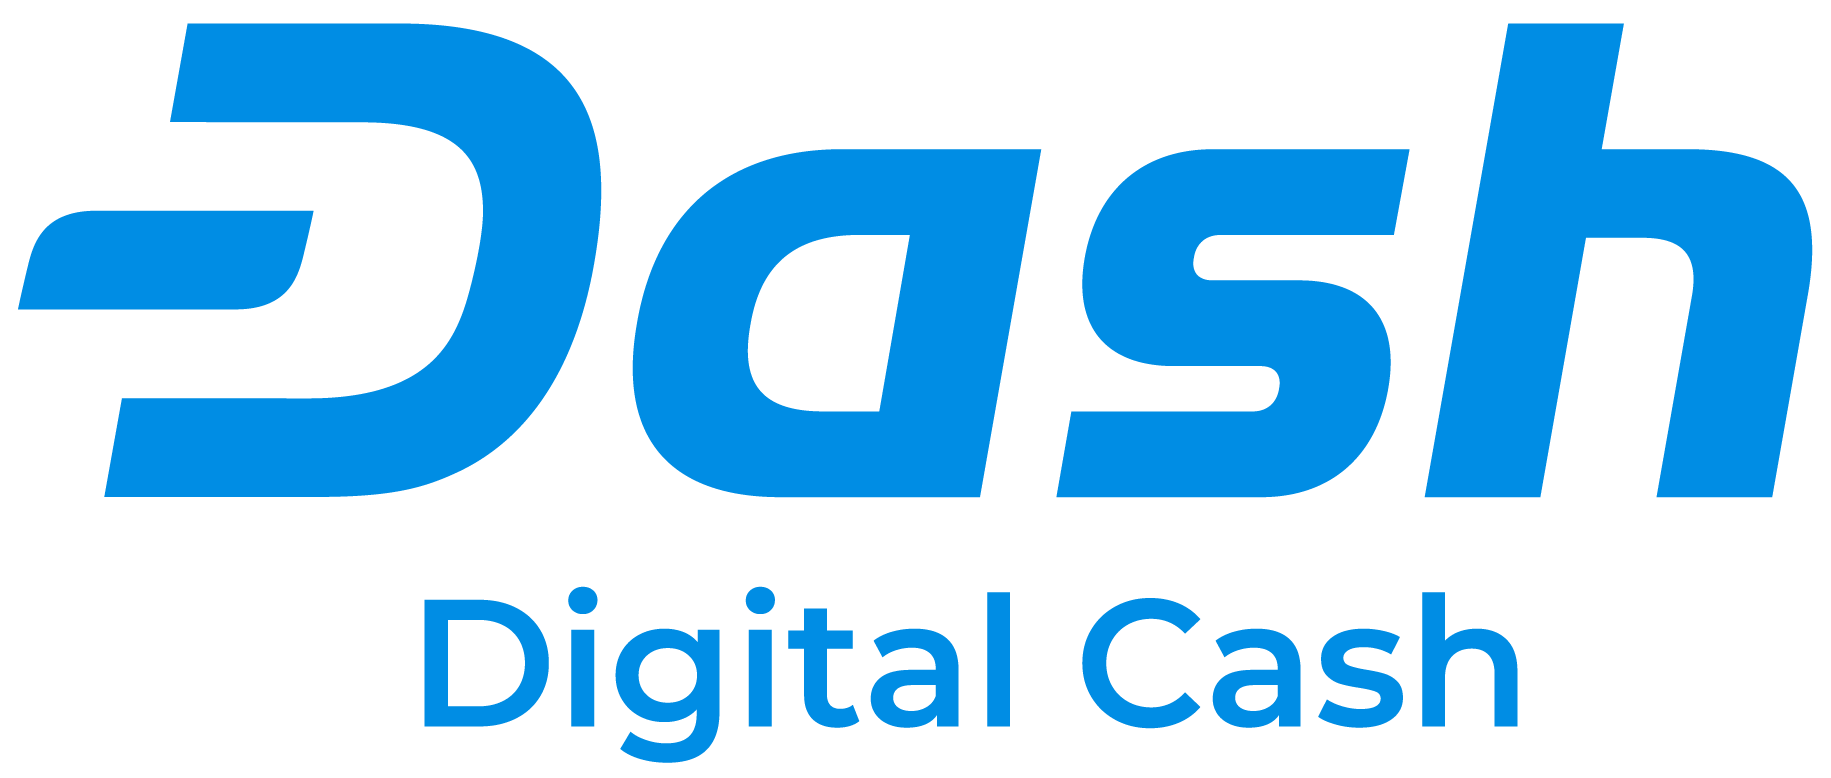 why buy dash coin